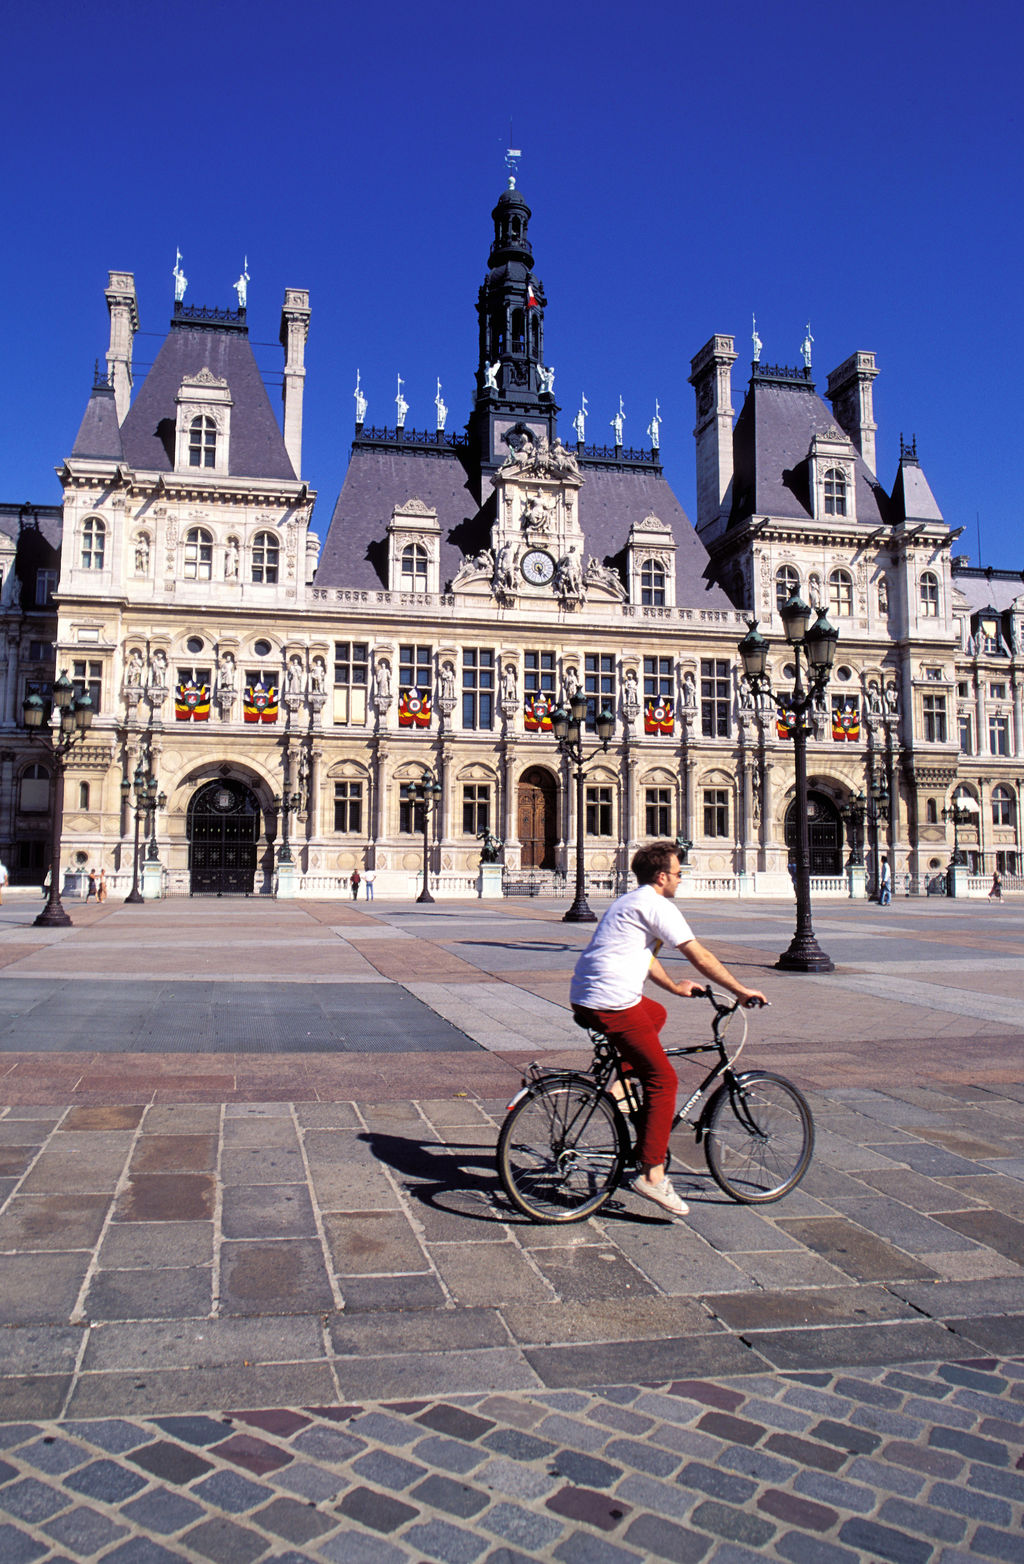 paris town hall paris tourism viamichelin. Black Bedroom Furniture Sets. Home Design Ideas